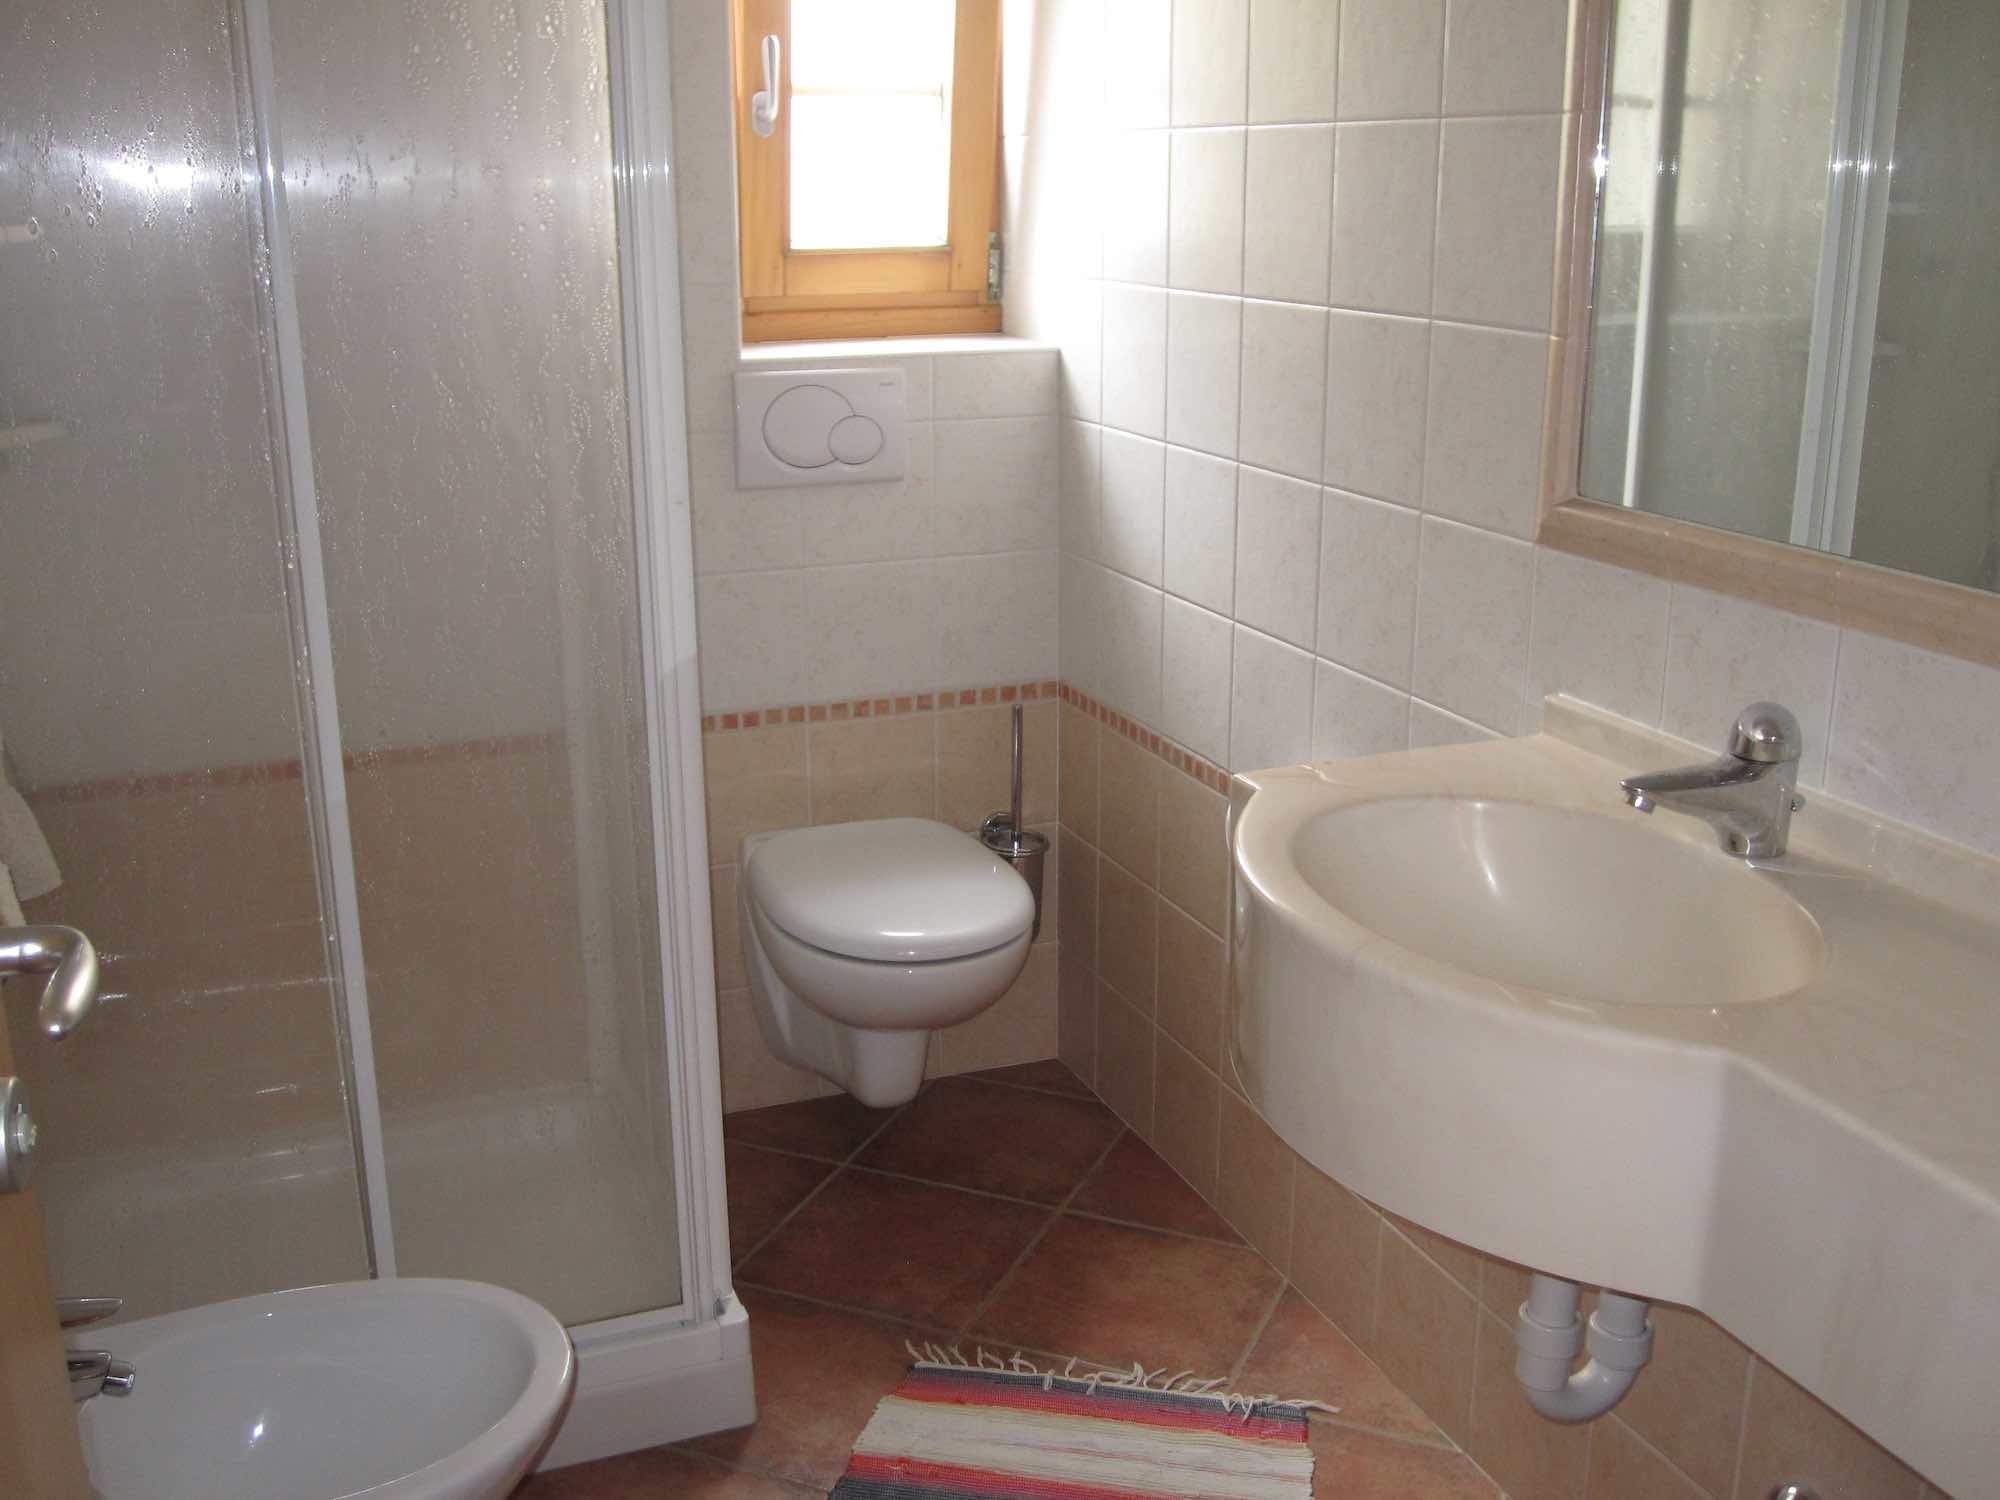 Baita La Broina - Via Florin, 24 - Apartment - Appartamento 8 4